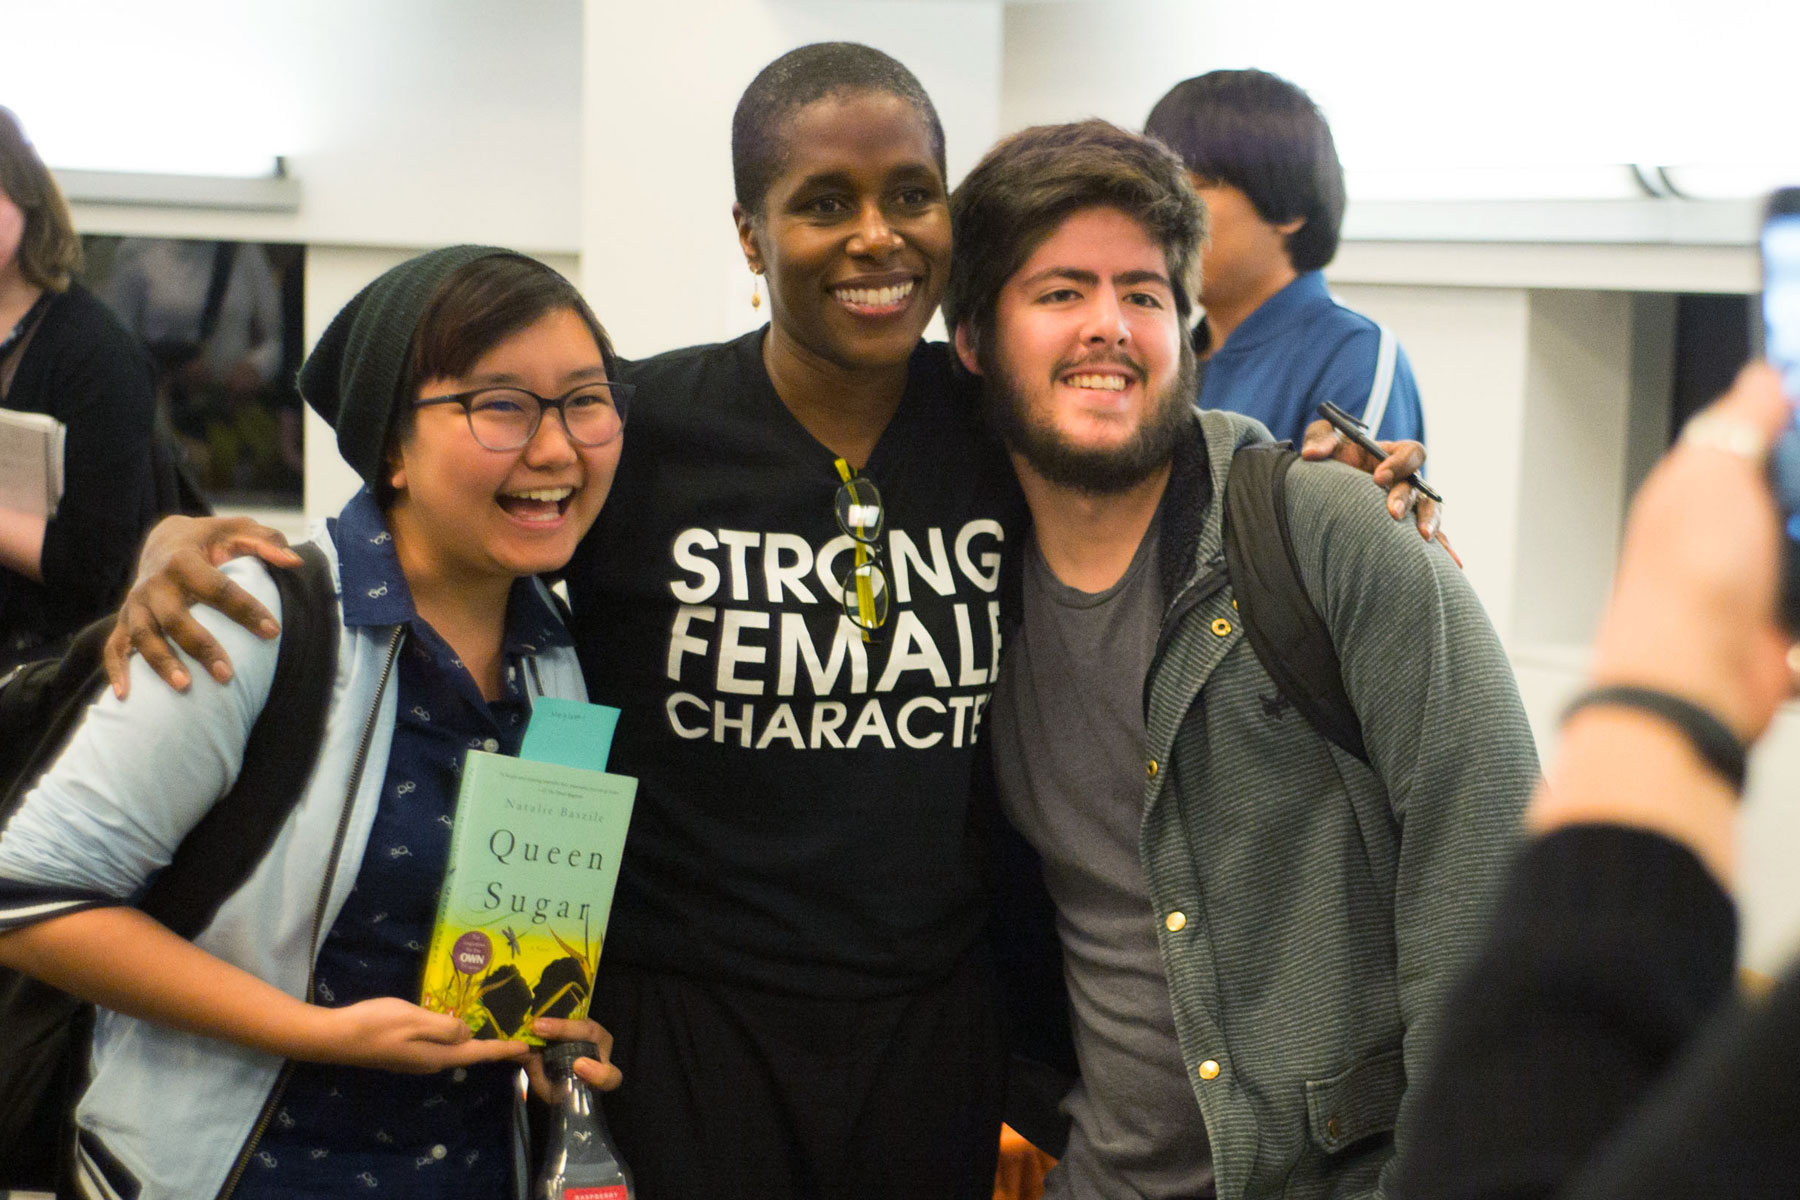 Center For Literary Arts guest author Natalie Baszile and SJSU students.